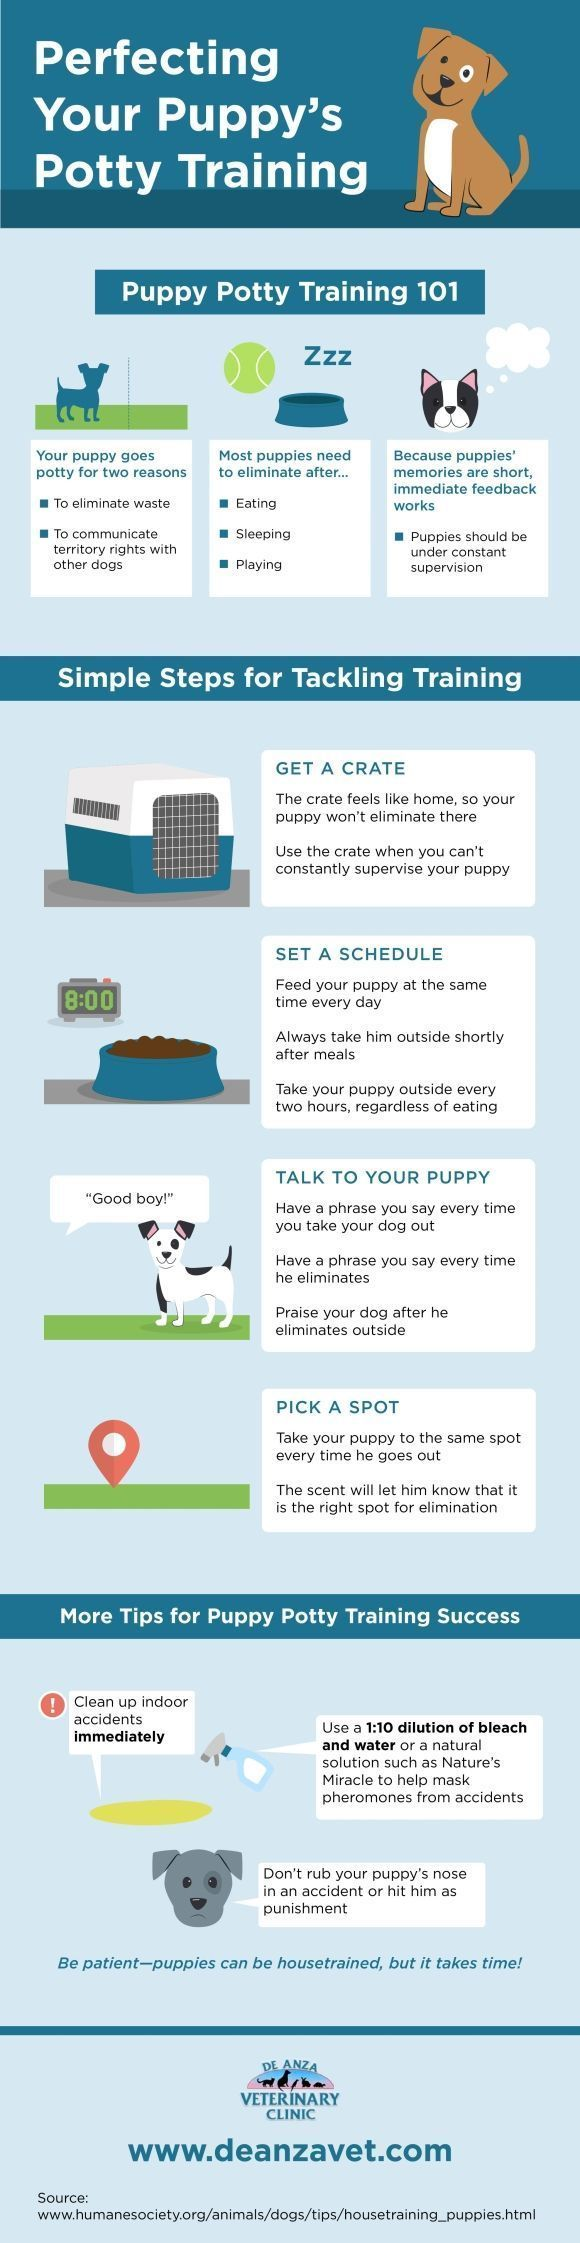 Do You Know How To Potty Train Your Puppy Start By Setting A